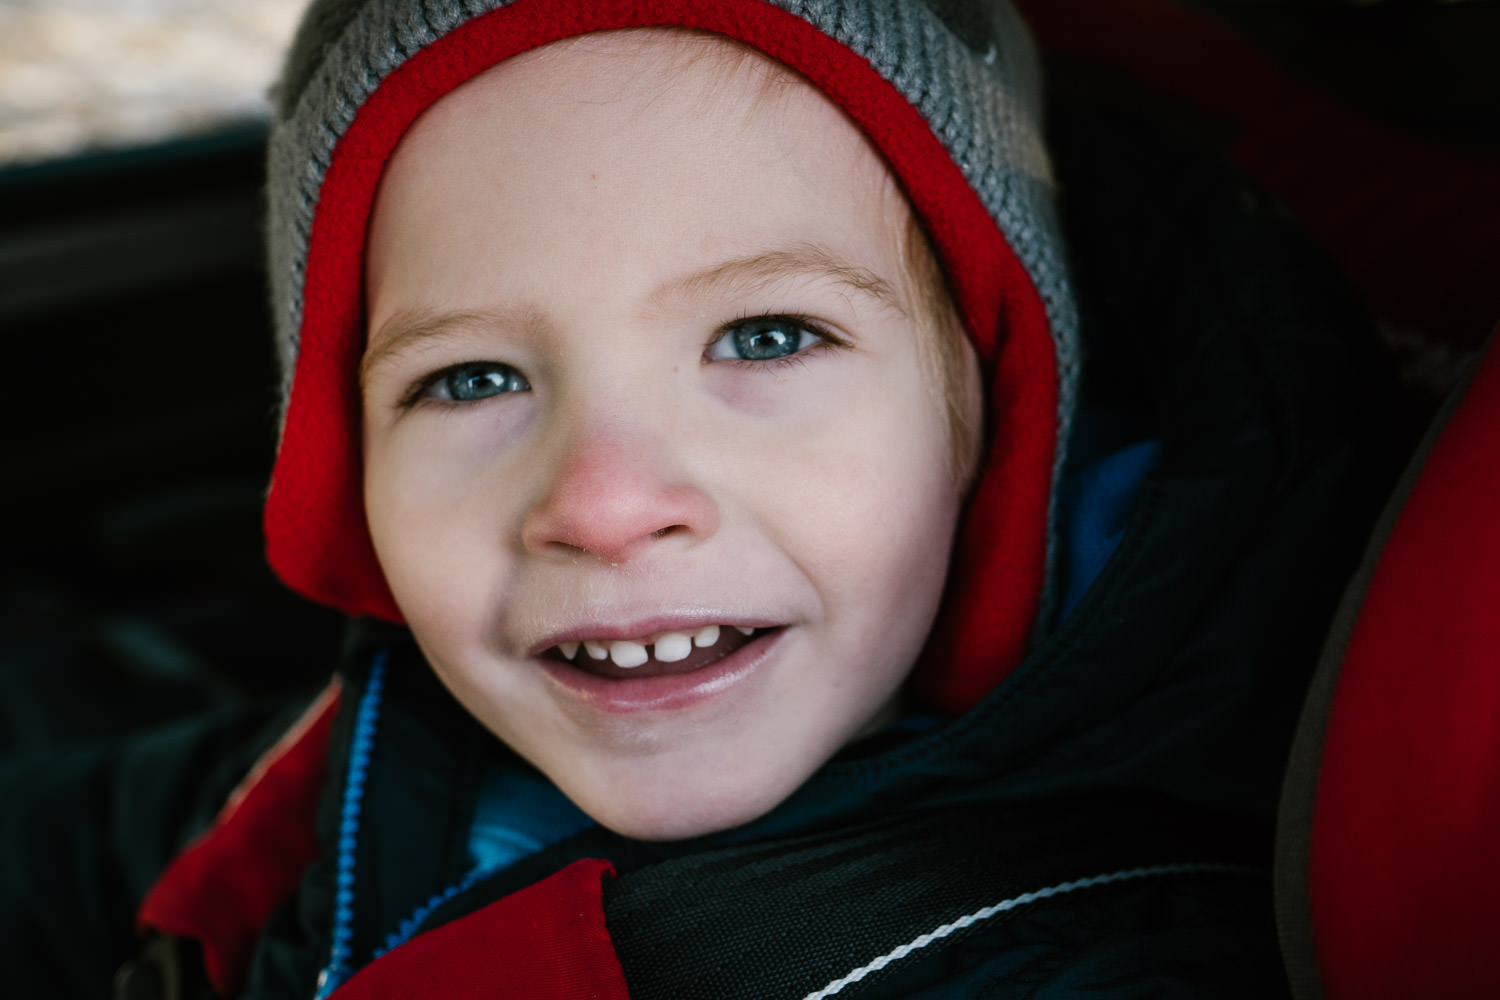 A portrait of a little boy in his car seat.